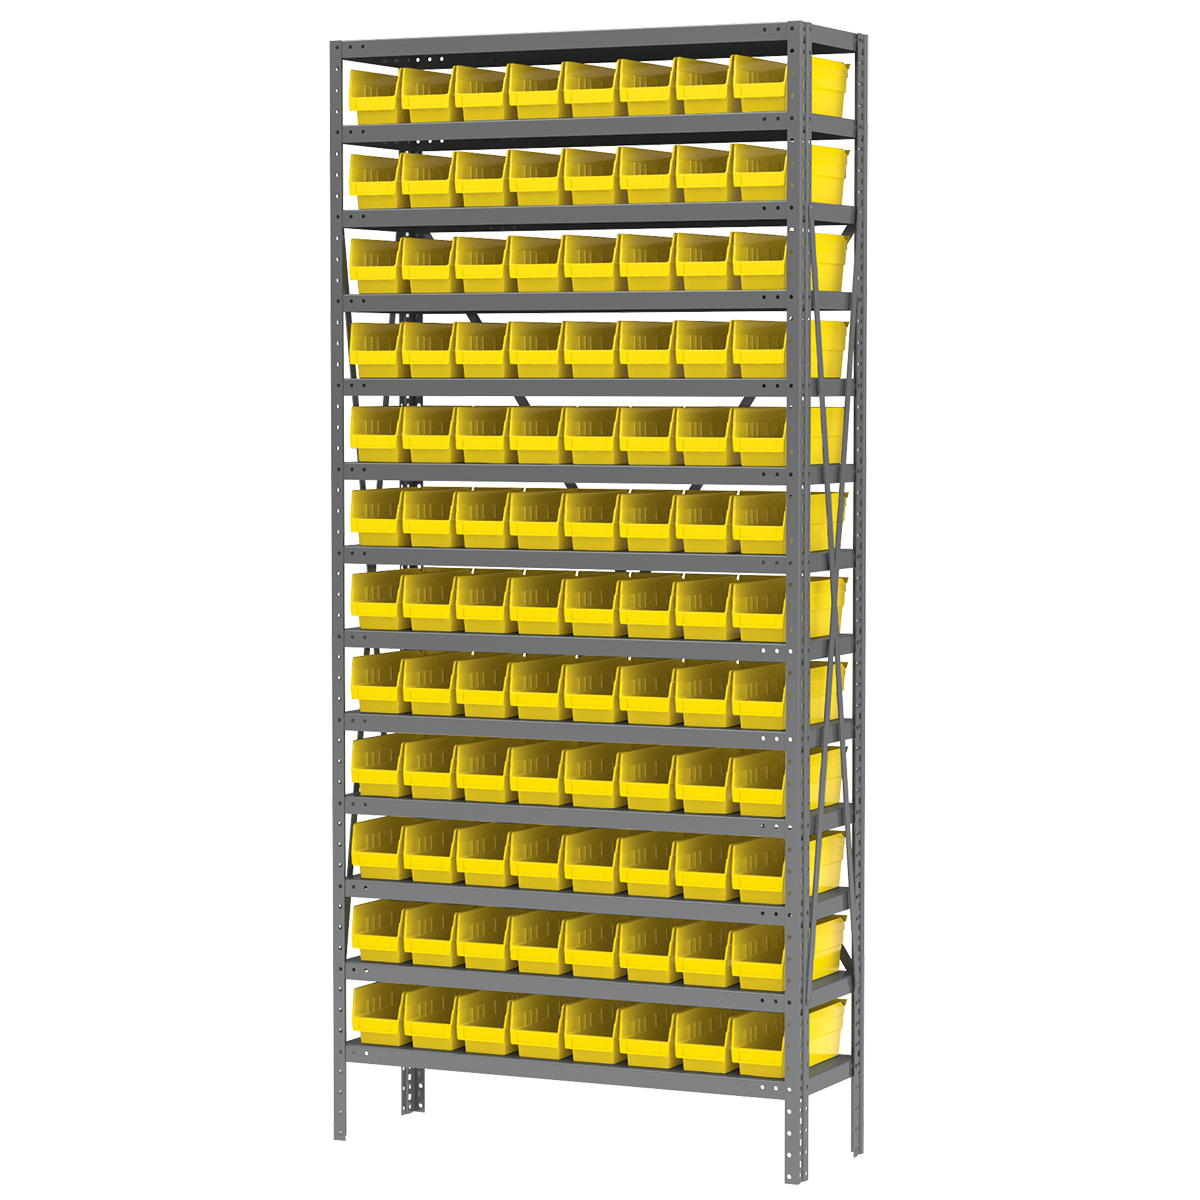 Steel Shelving Kit, 12x36x79, 96 Bins, Gray/Yellow (AS1279120Y).  This item sold in carton quantities of 1.